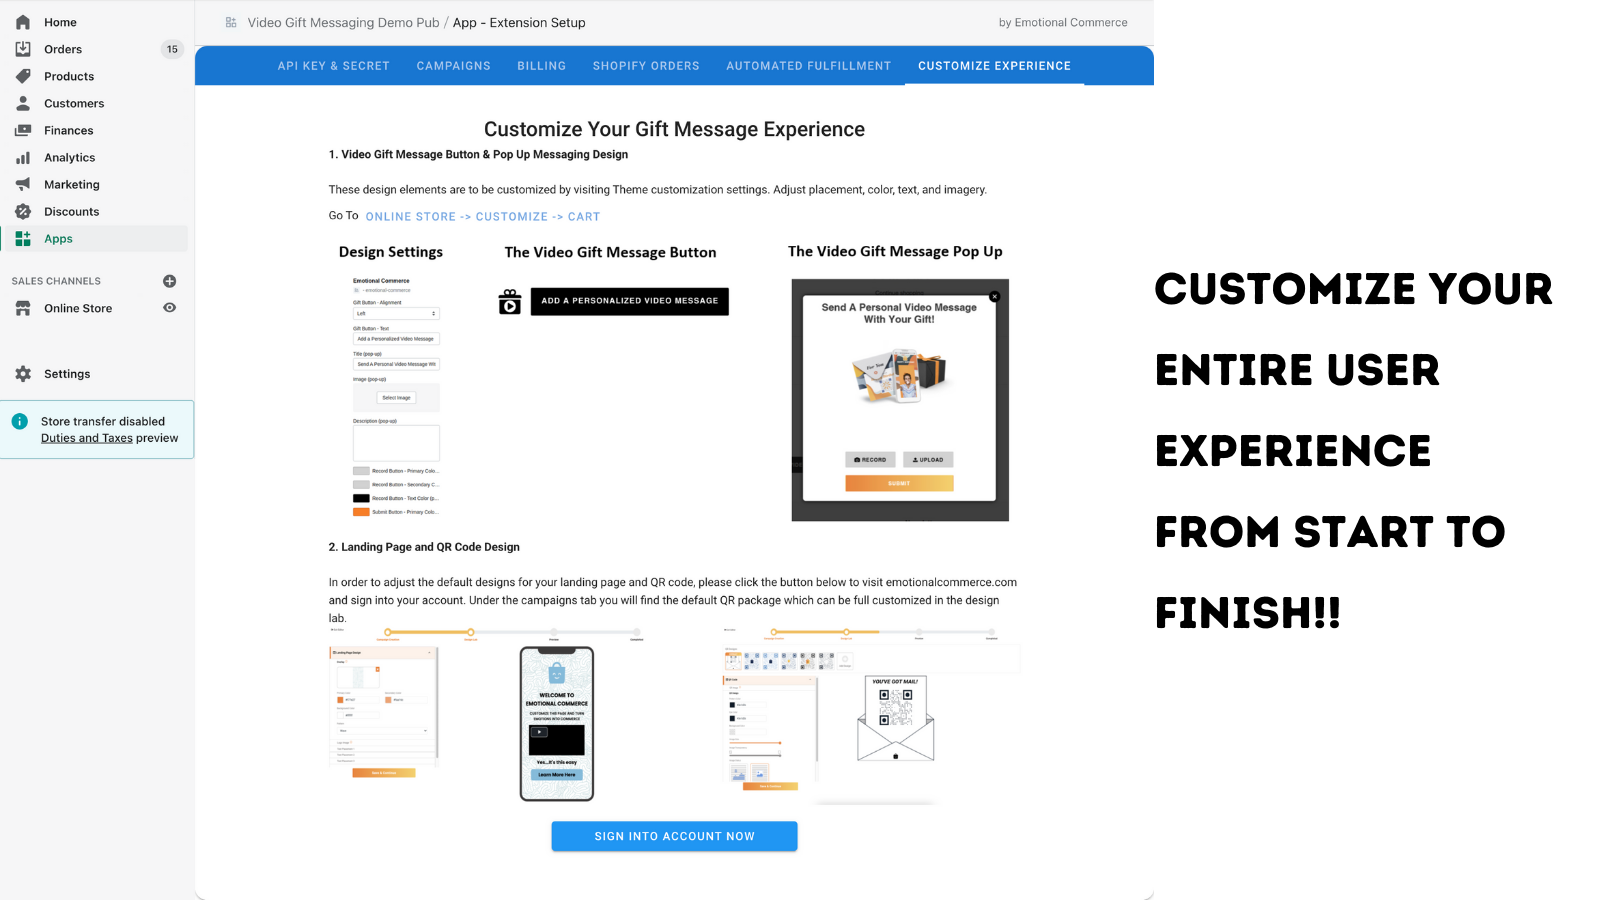 Customize the gifting experience to best fit your store needs!